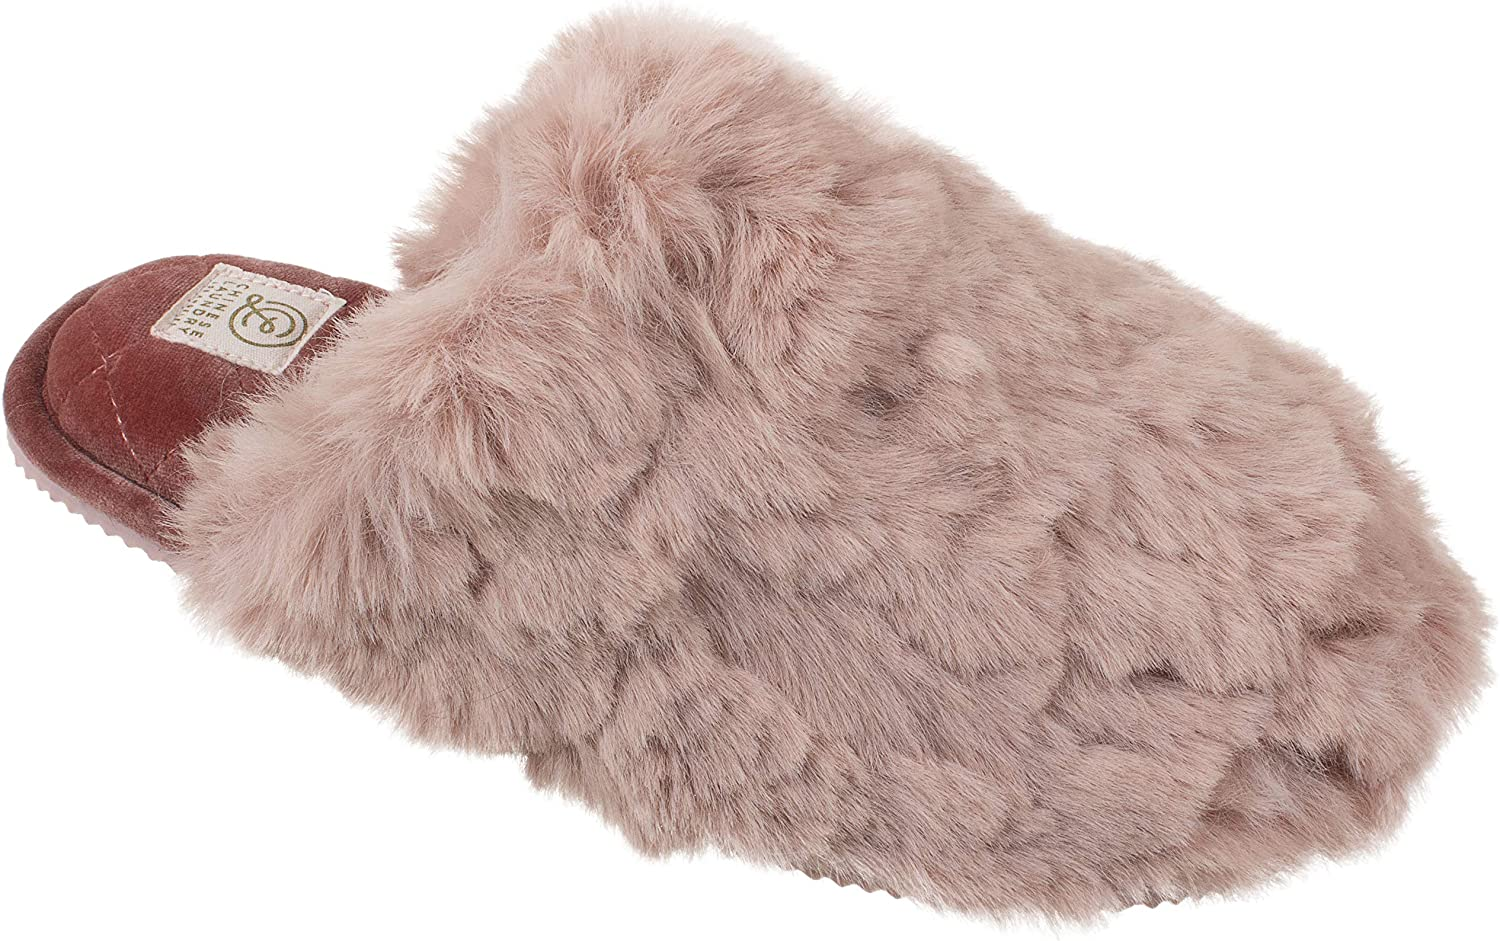 Chinese Laundry CL Women's Slippers Winter Knit on Cl High material Warm Slip Indianapolis Mall